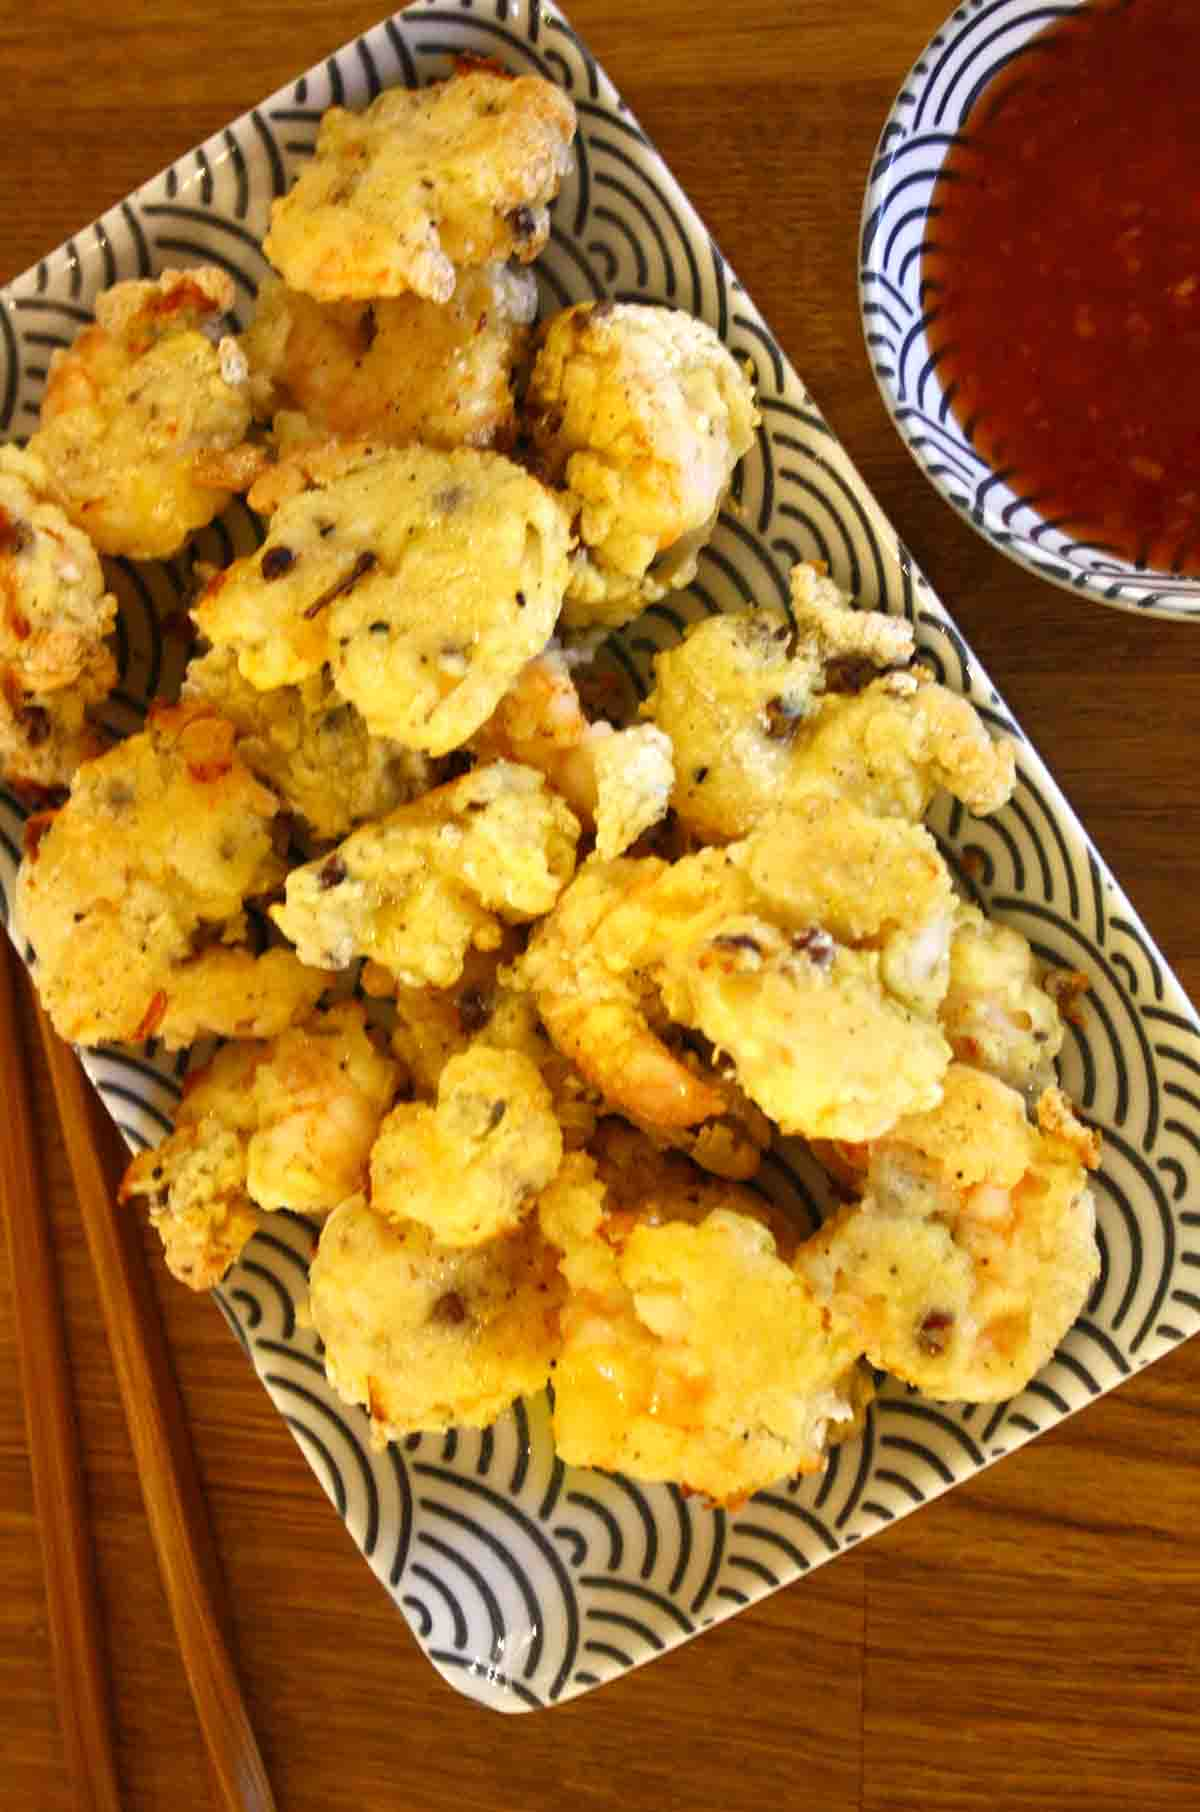 Sichuan prawns or Szechuan prawns on a plate with sauce in the background.